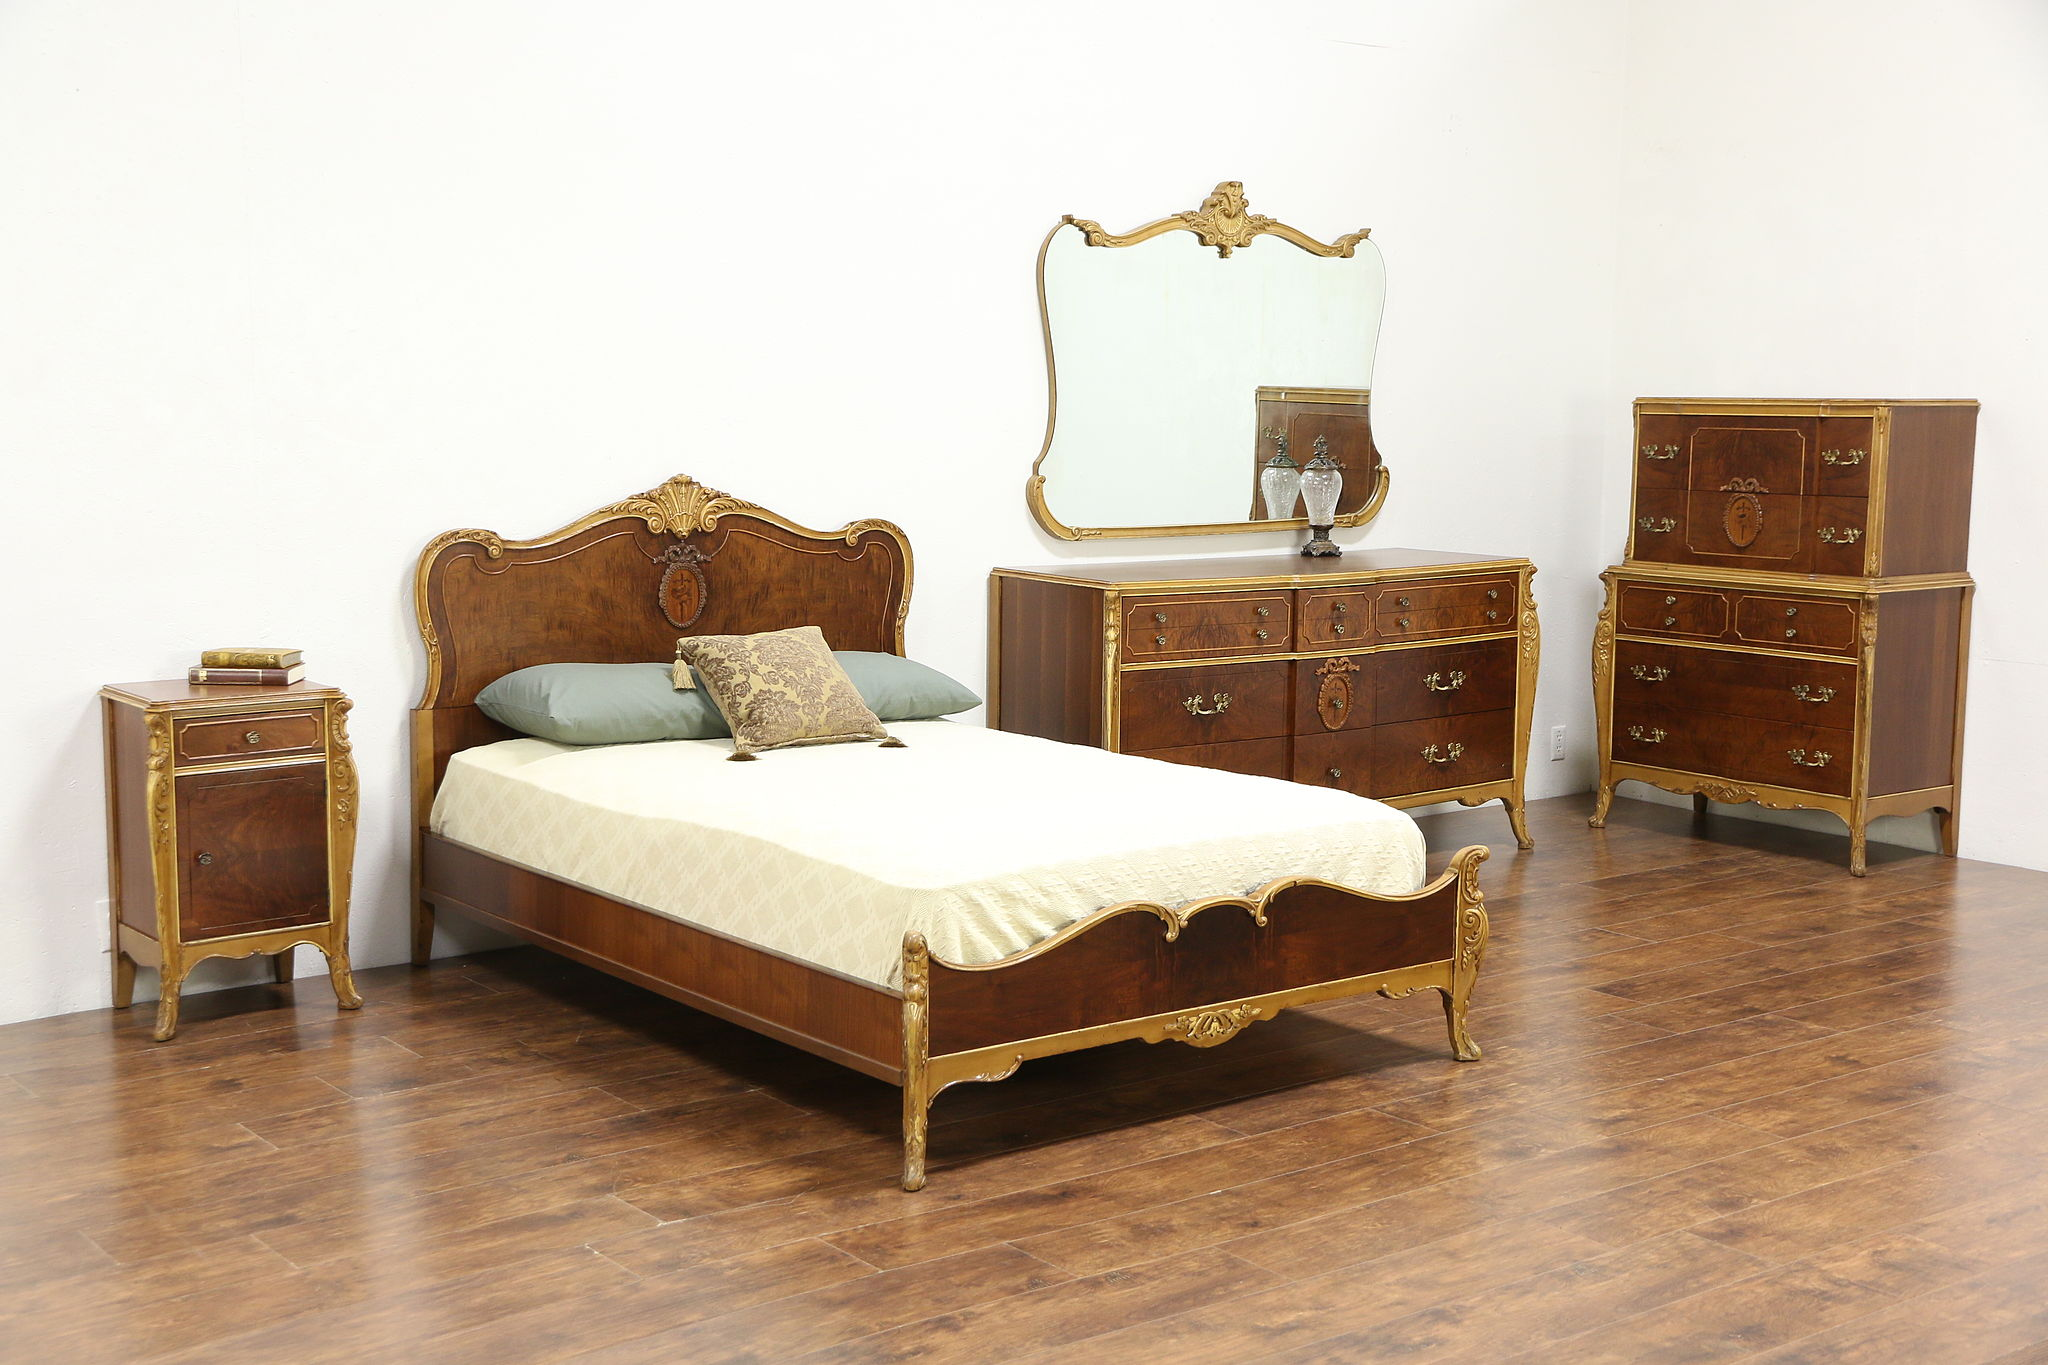 sold - french style 5 pc. 1930's vintage marquetry bedroom